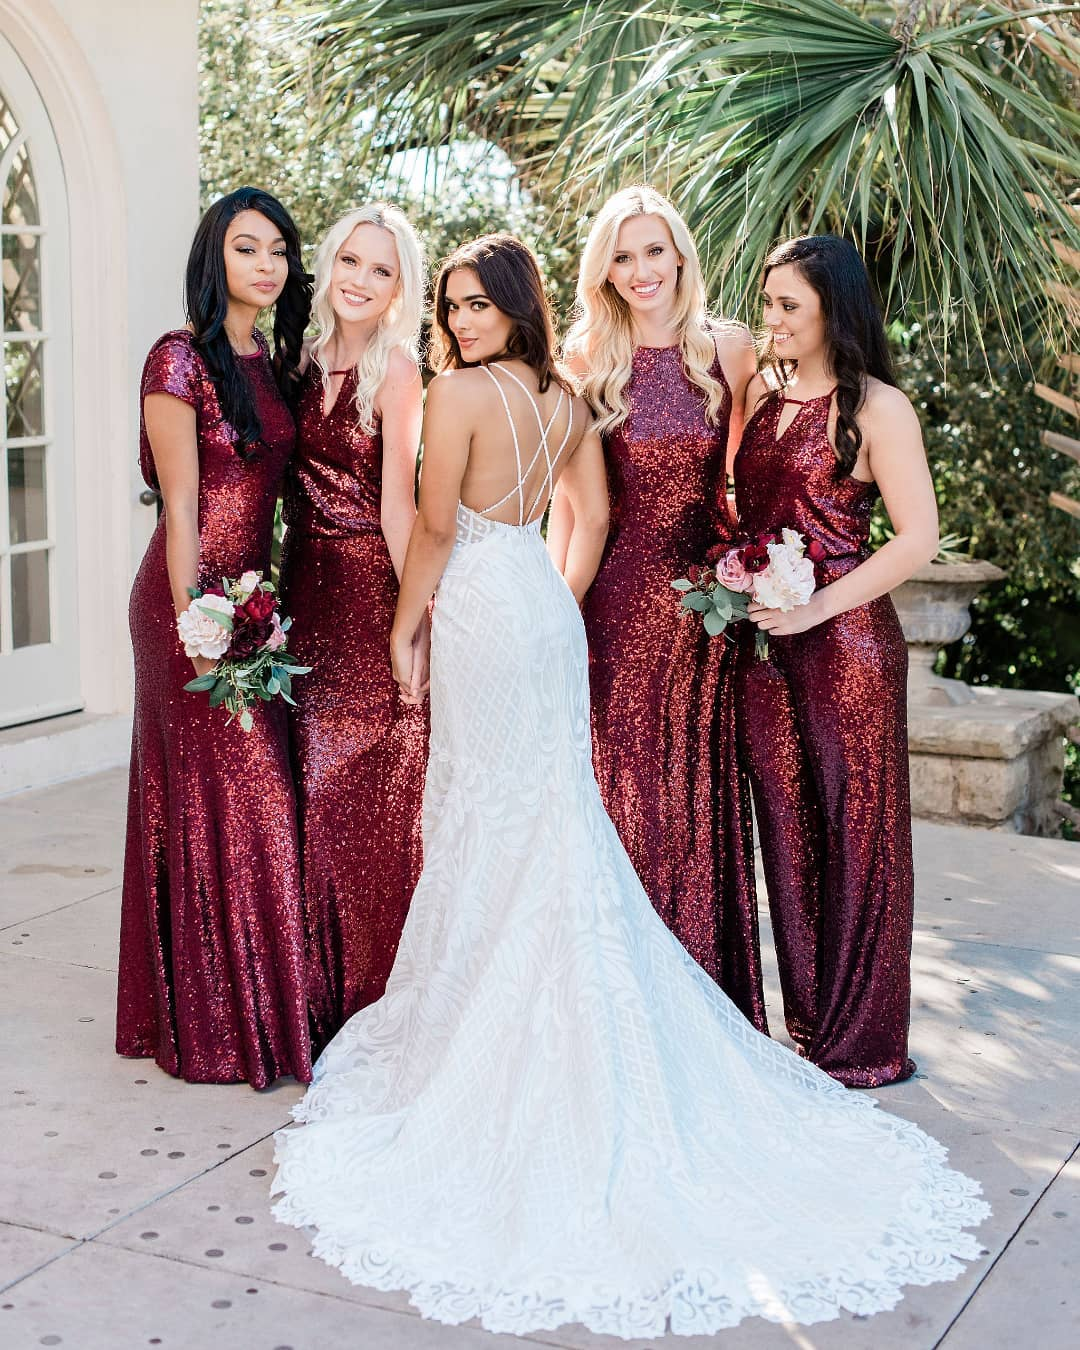 6a5d3a5acebc45 Modern Grecian goddess vibes in these glittery cabernet bridesmaid gowns  from shoprevelry! And that strappy